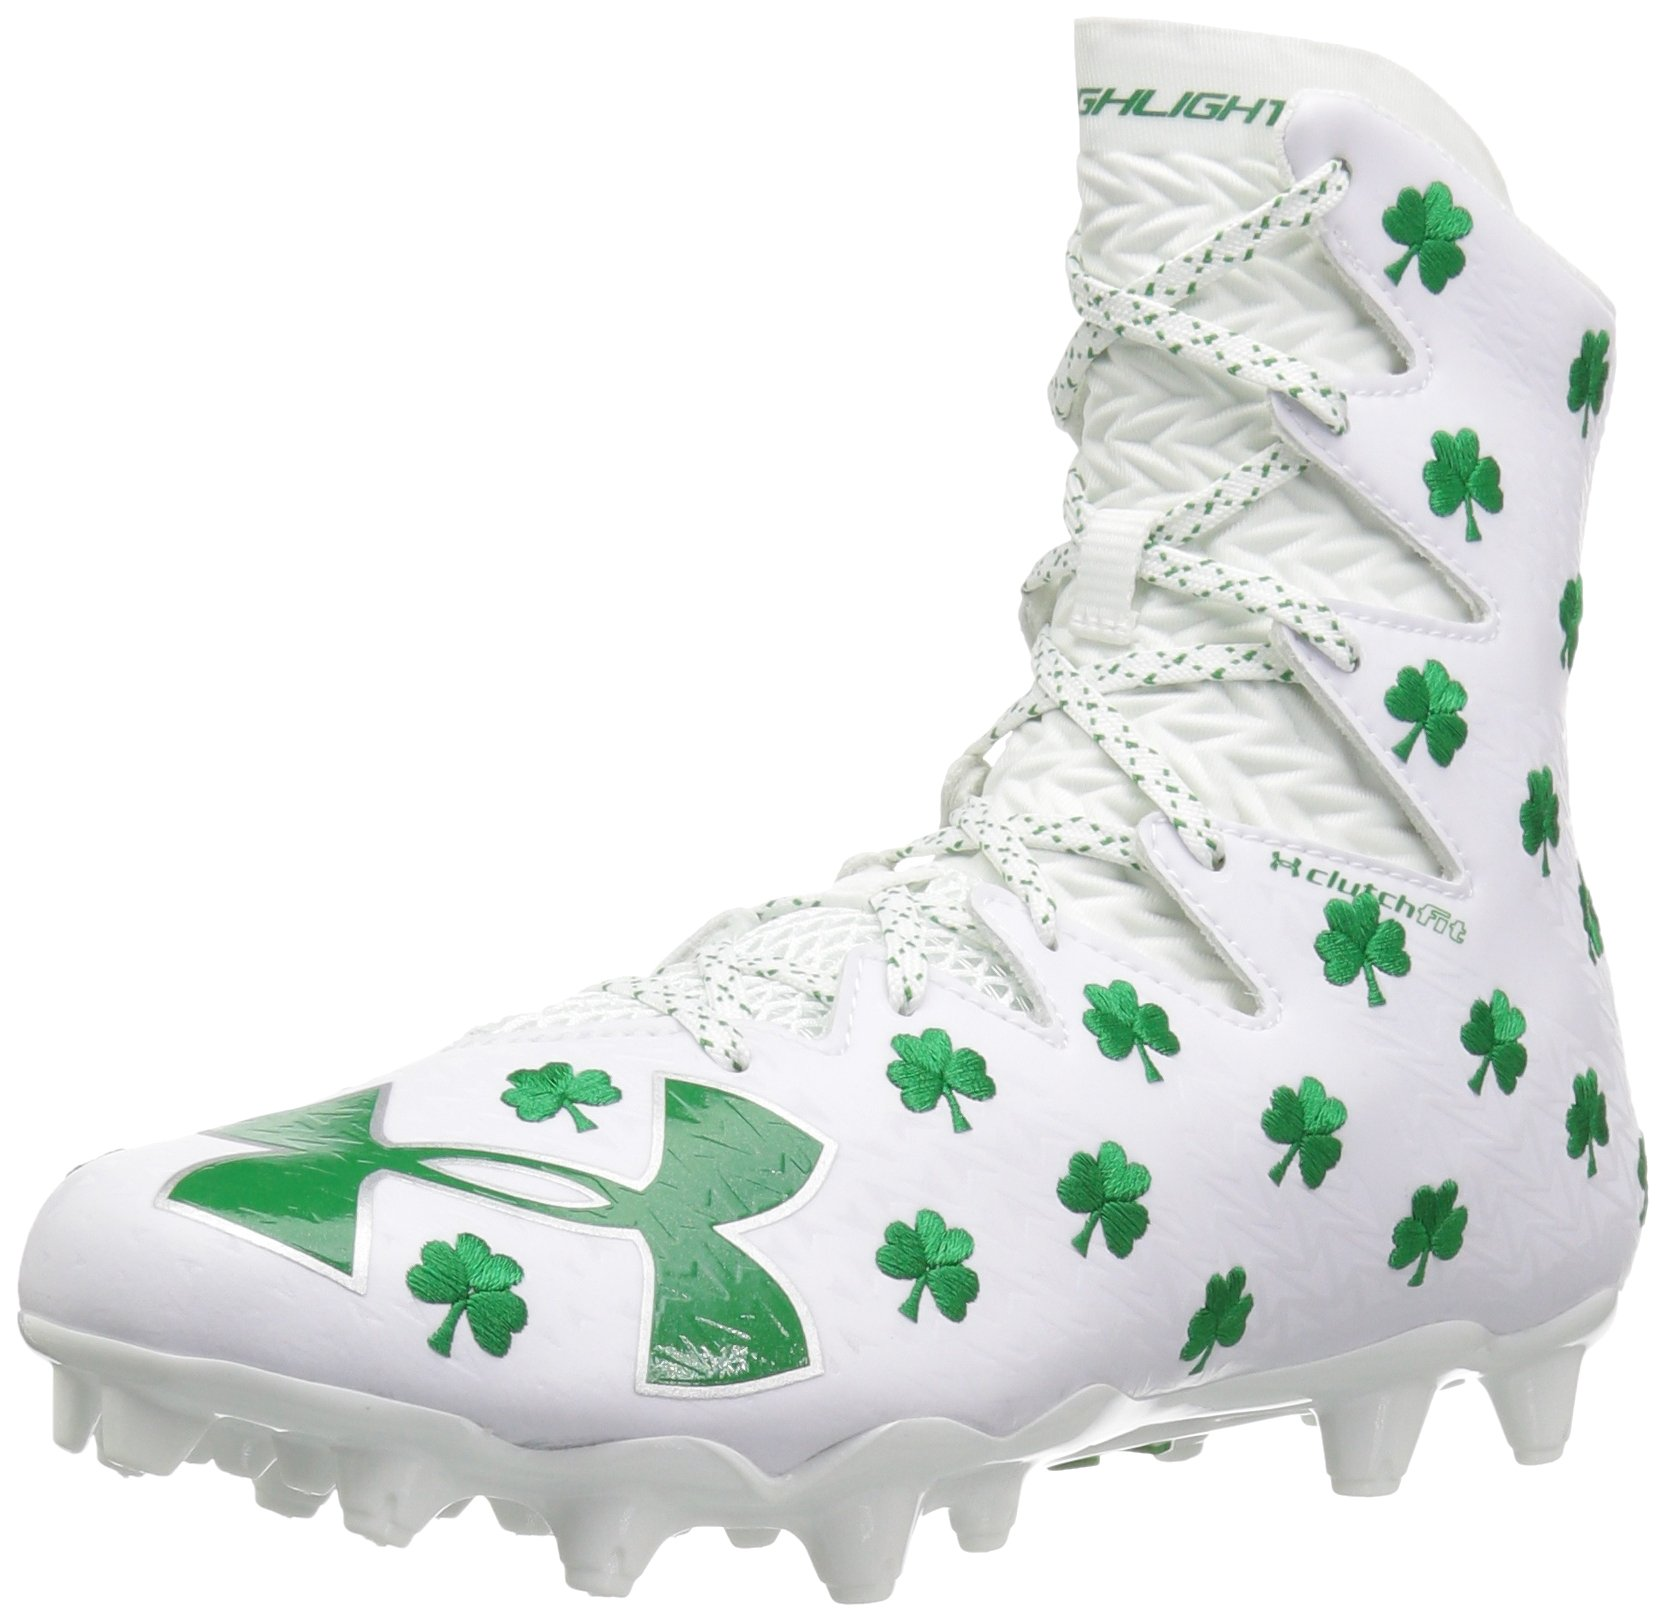 Under Armour Men's Highlight M.C. -Limited Edition Lacrosse Shoe, White (131)/Team Kelly Green, 16